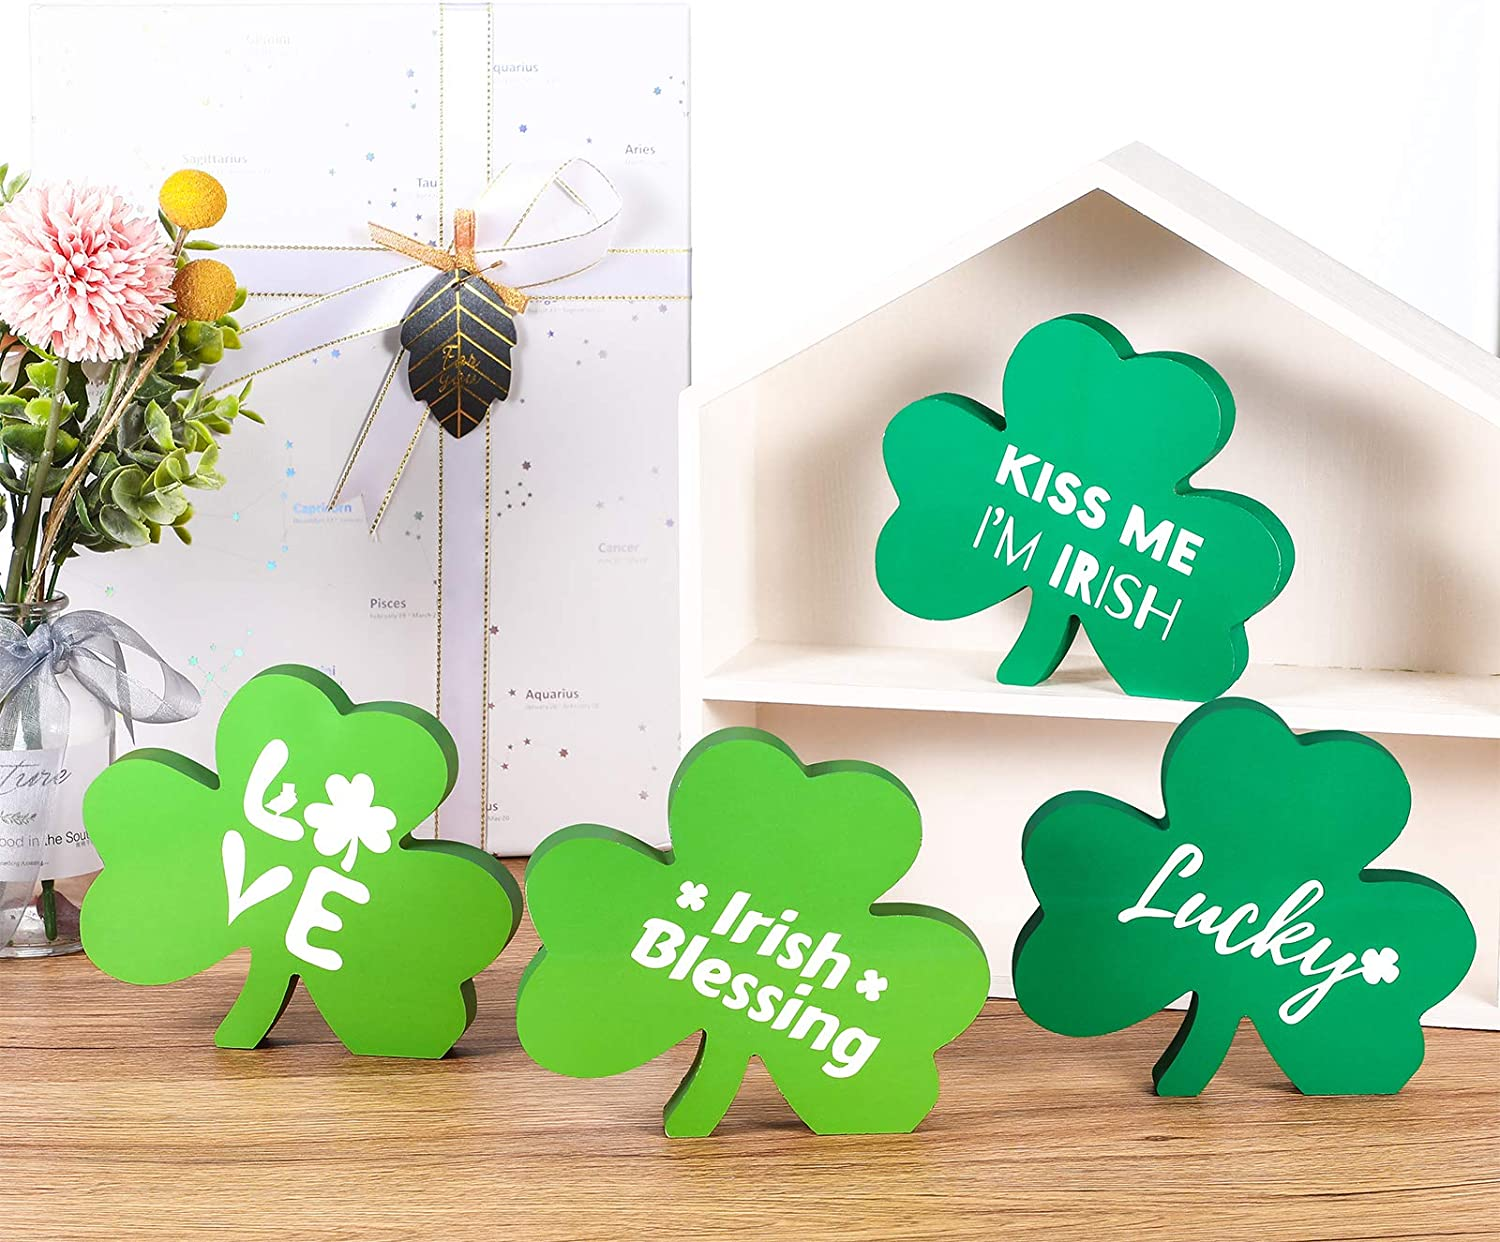 Jetec 4 Pieces St. Patrick's Day Wooden Shamrock Decorations Shamrock Wooden Signs Irish Themed Wooden Table Signs for Desk, Wall, Office and House Decor